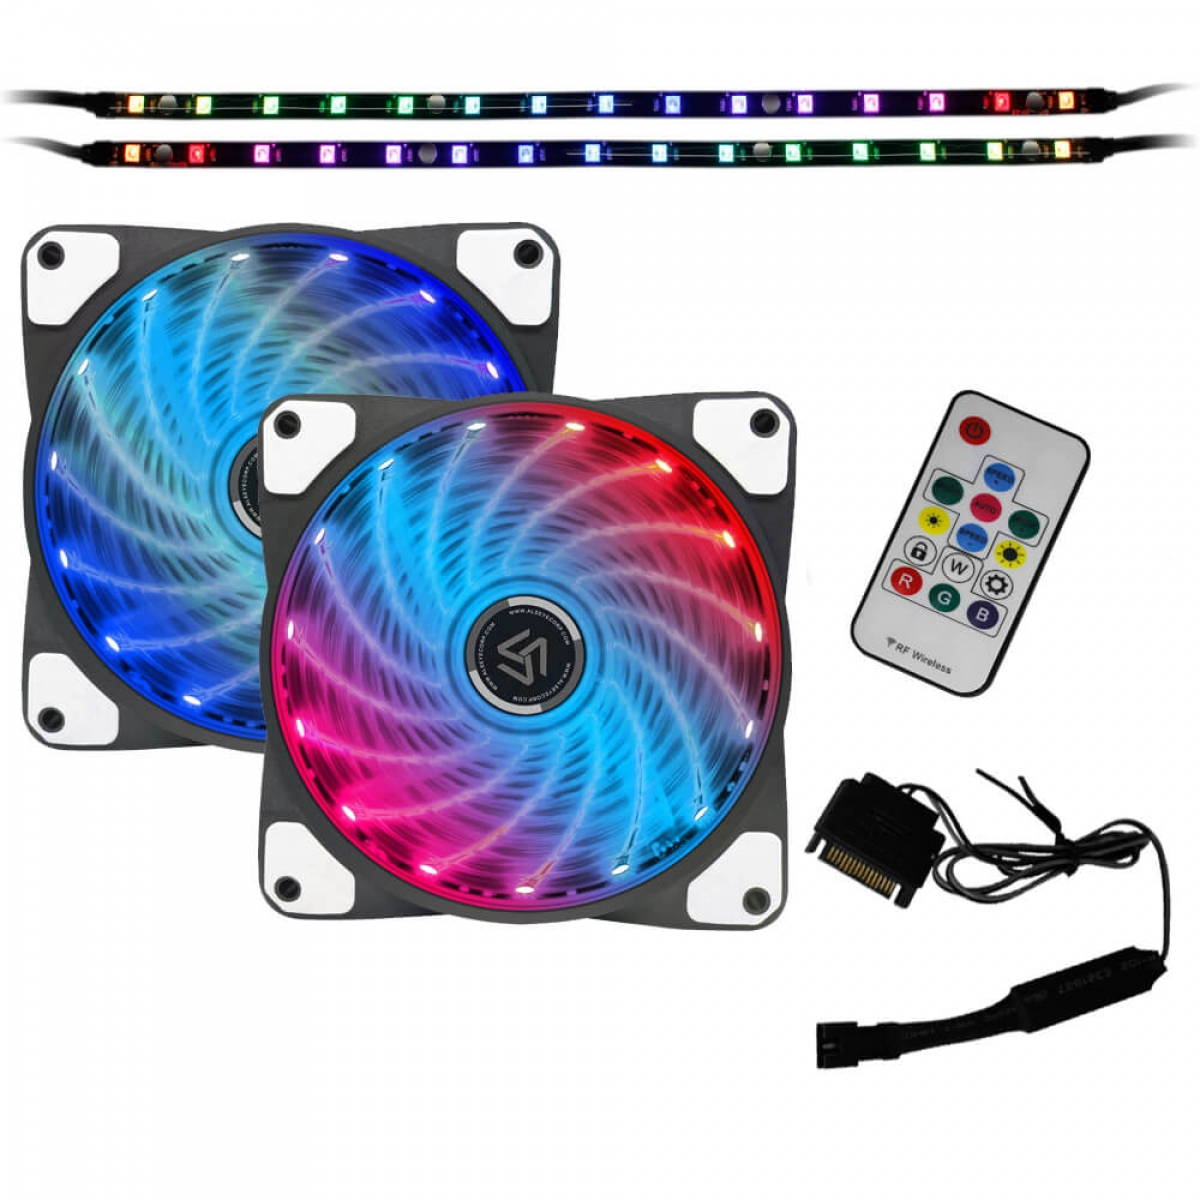 Kit Fan com 2 Unidades Alseye Sooncool Rainbow RGB, 120mm, Fita LED, com Controlador, CRLS-200